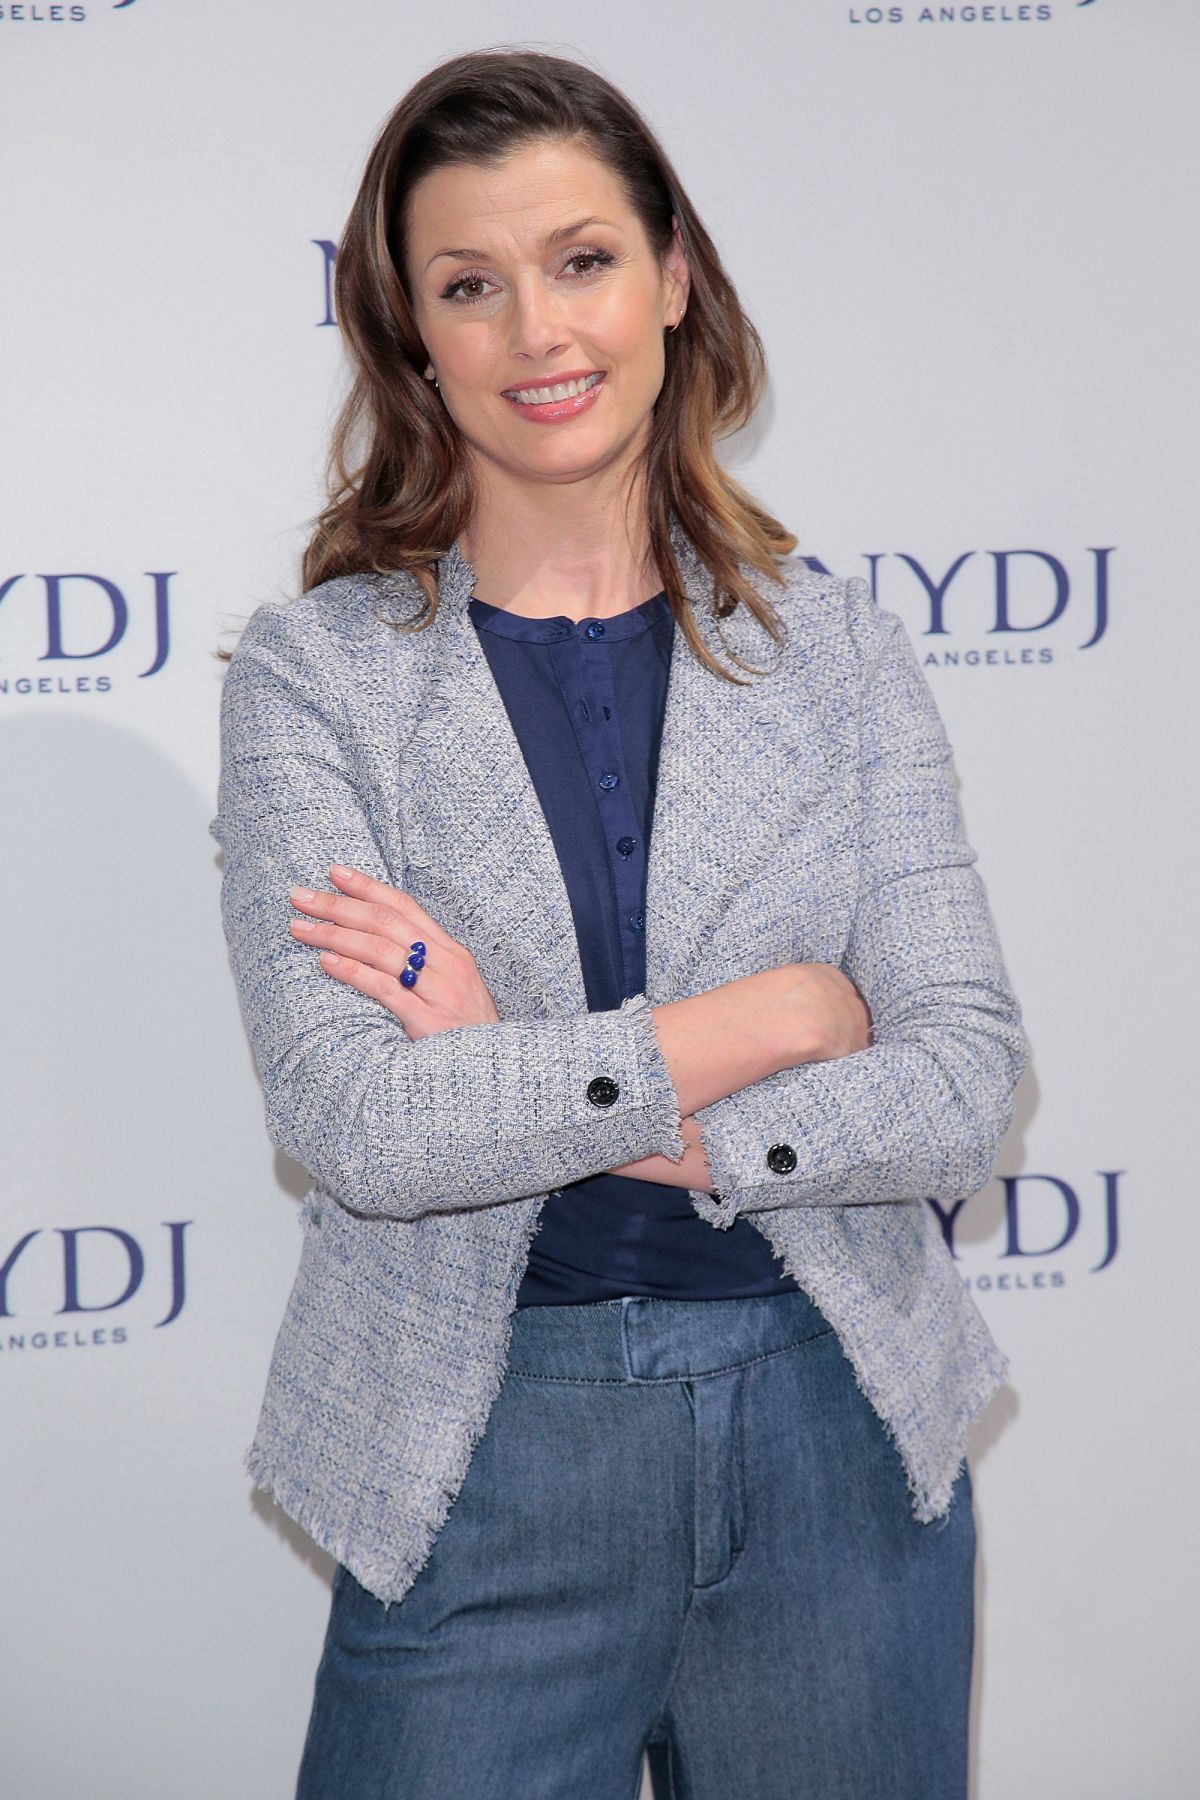 BRIDGET MOYNAHAN Debuts nydj 2016 Fit to be Campaign at Lord & Taylor Fifth Avenue 01/25/2016